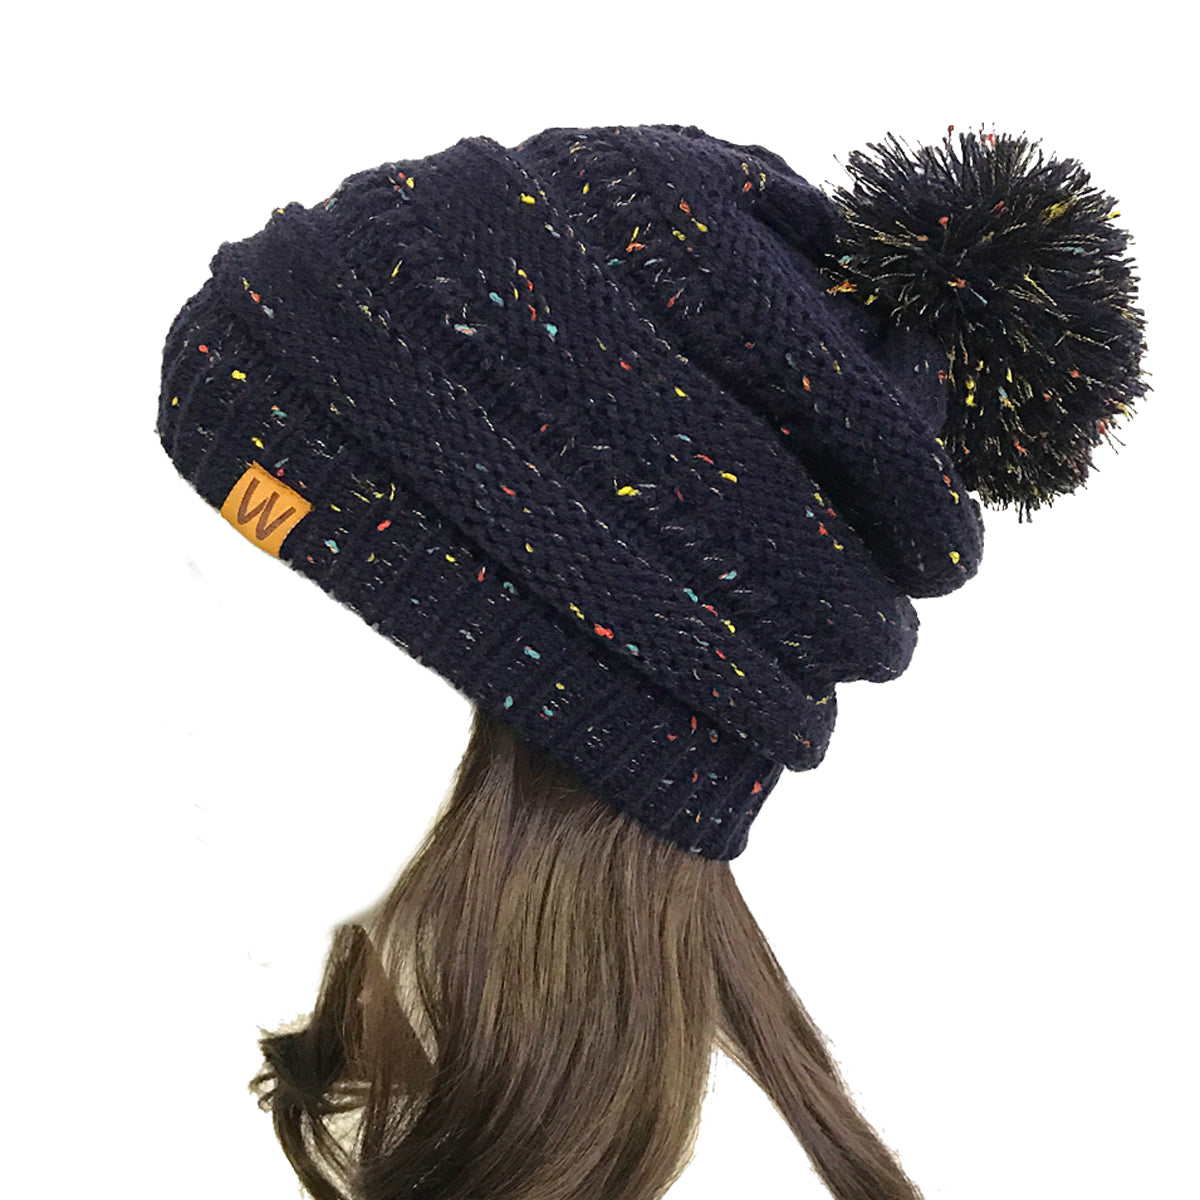 Wrapables Warm Knit Confetti Beanie with Pom Pom, Black